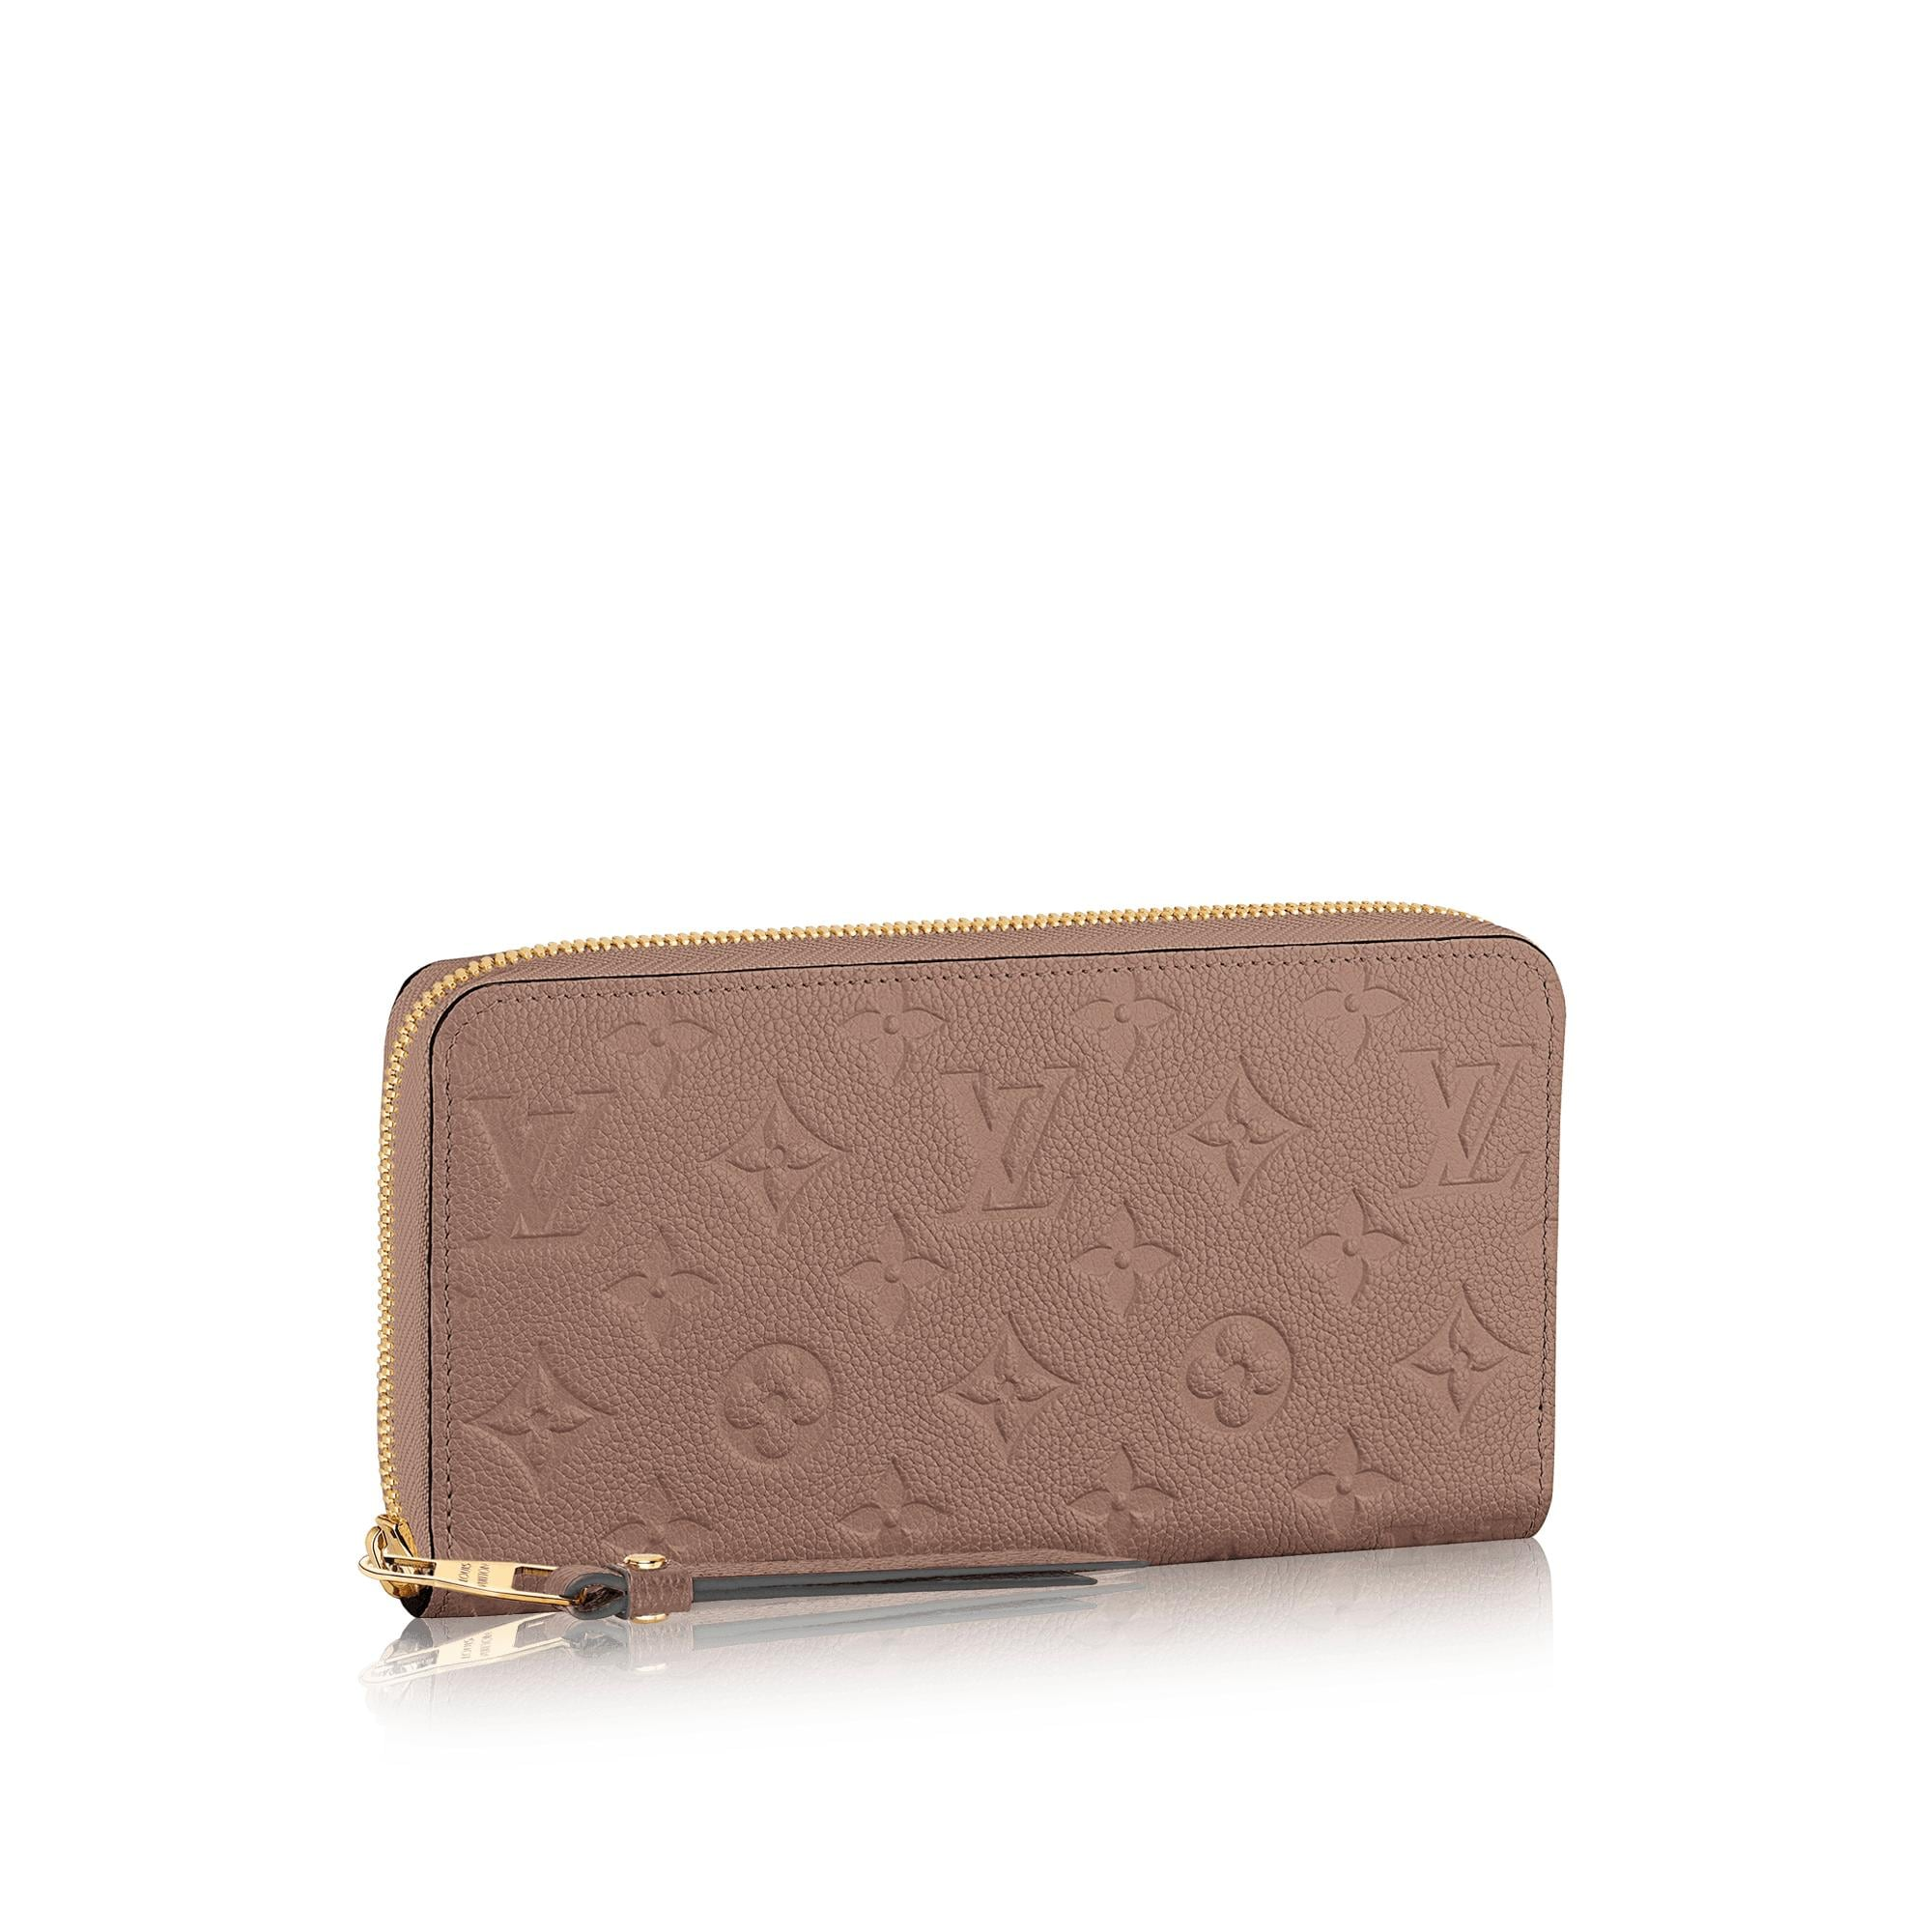 Image result for louis vuitton tan embossed wallet